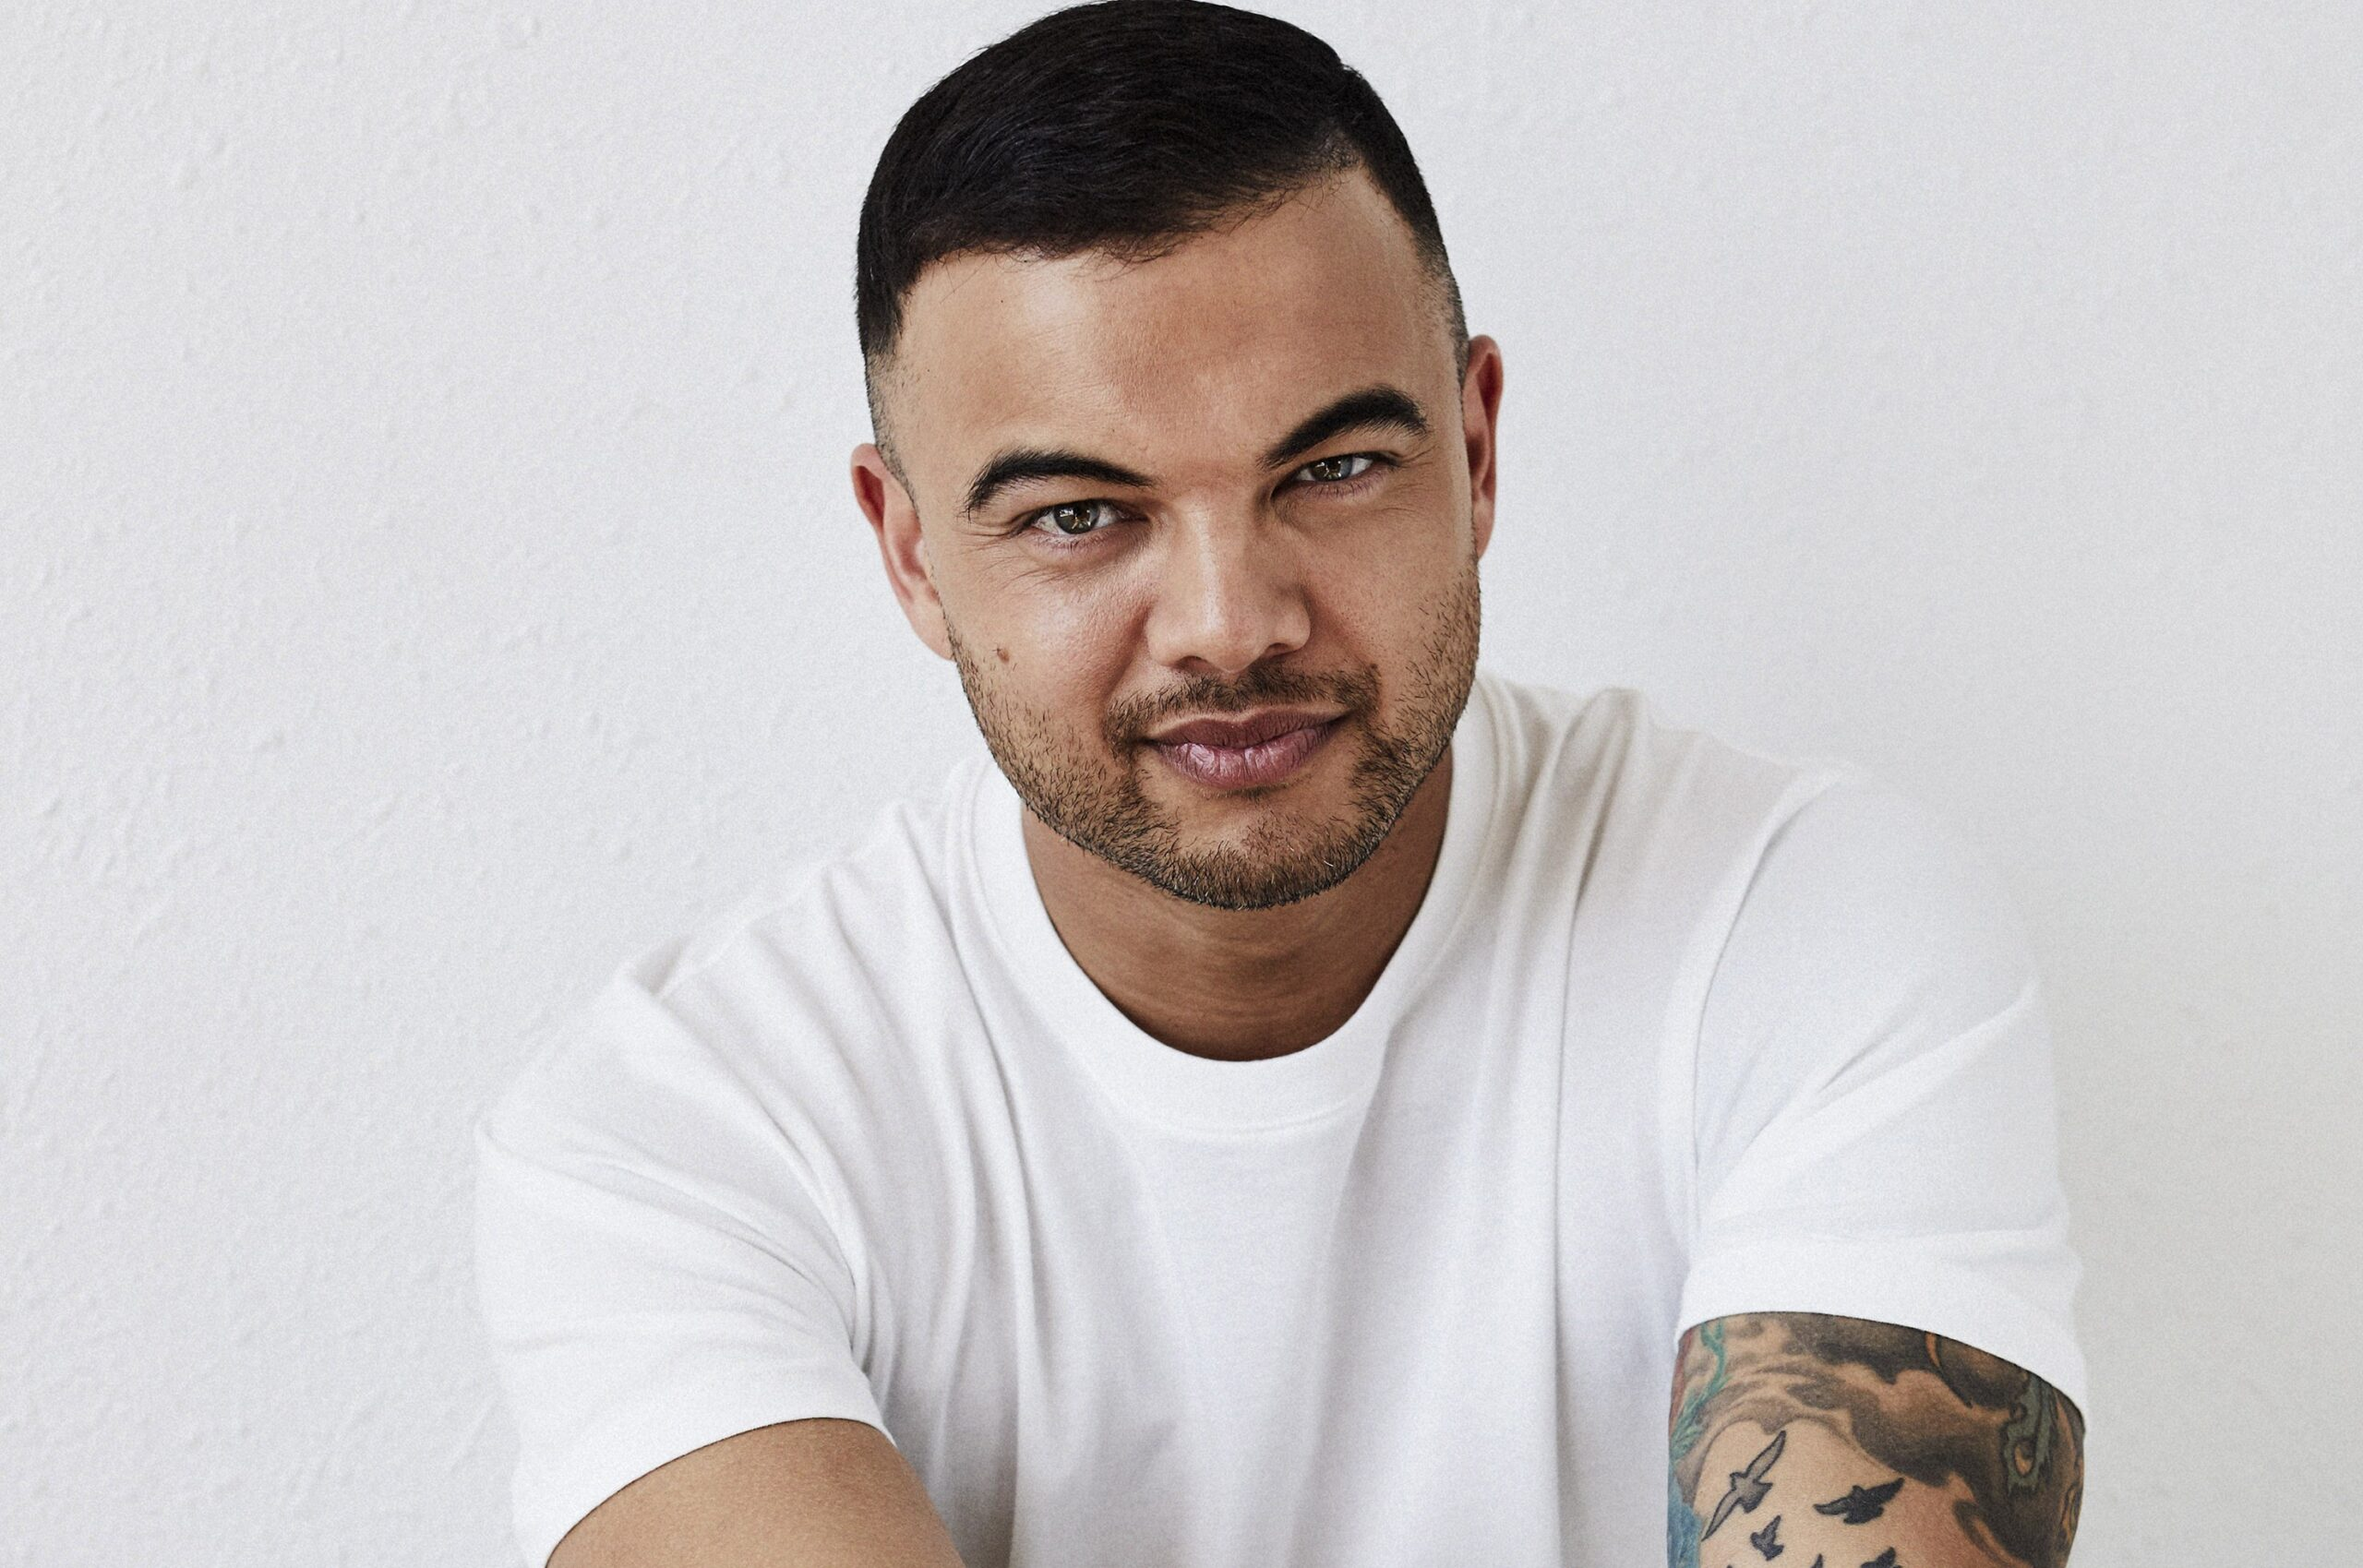 Guy Sebastian Phone number, Email Id, Fanmail, Instagram, Tiktok, and Contact Details